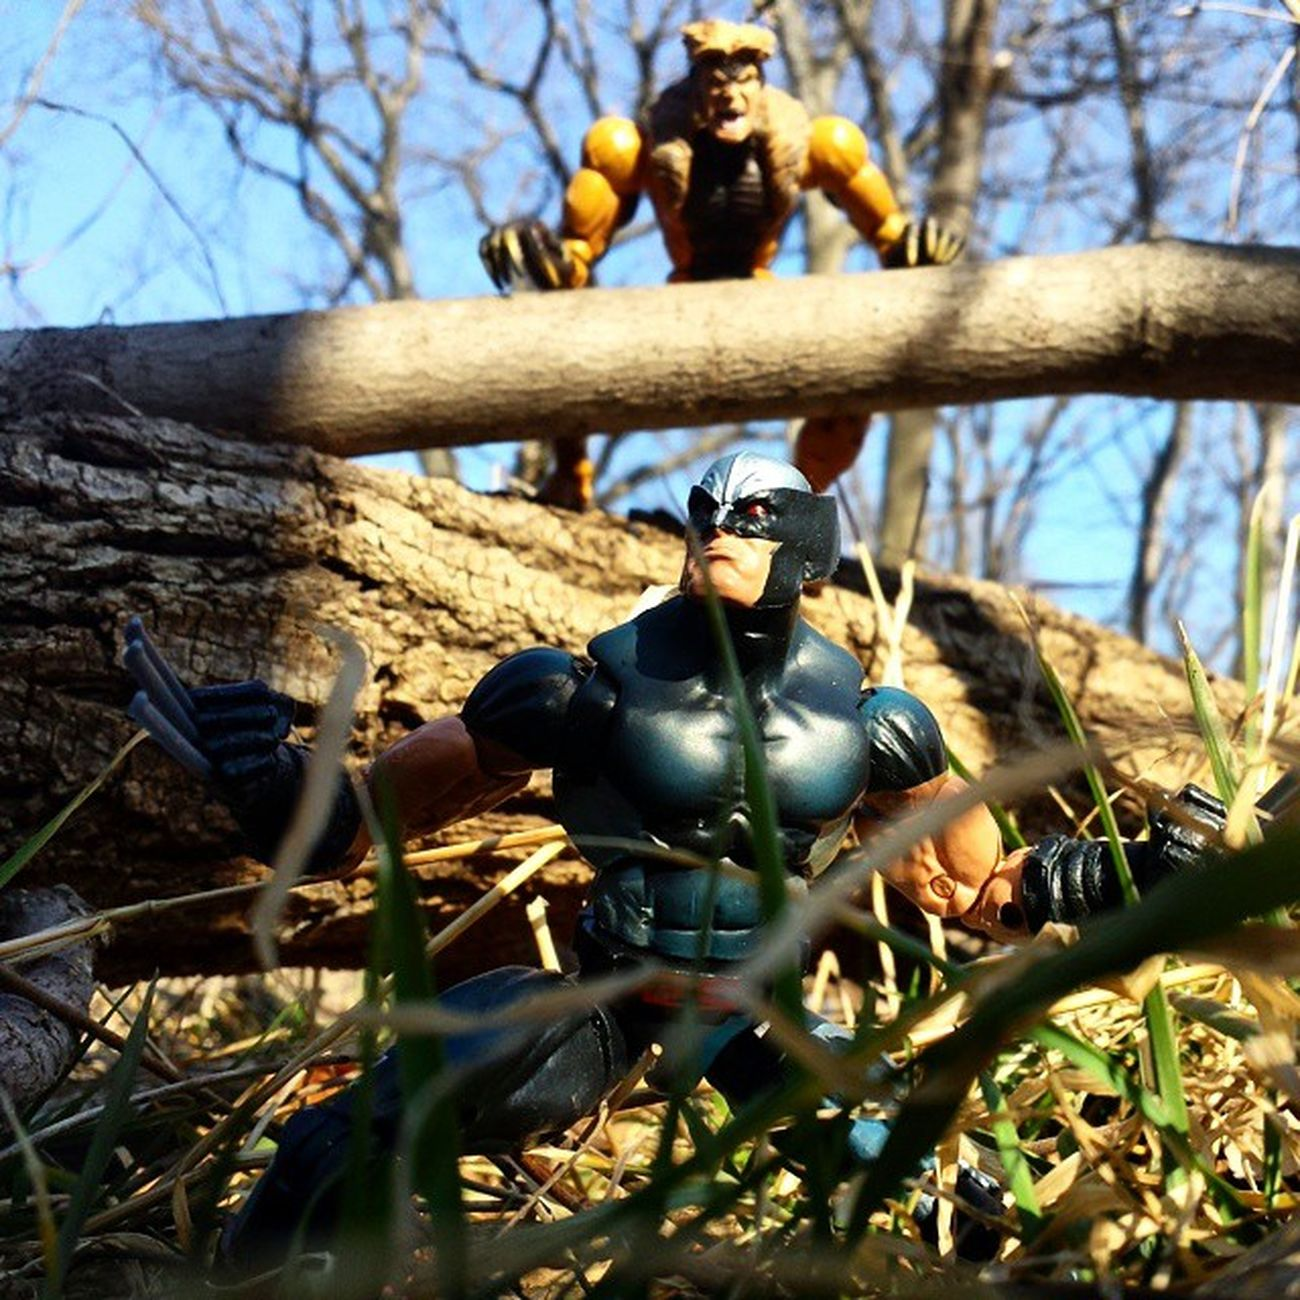 Decided to try out taking pictures Outside . Thanks to @thetoned for the Wolverine . Logan Thebestatwhathedoes SABERTOOTH Marvel Marvellegends Toyphotography Toypizza Toysarehellasick Toyfan Toyslagram Toyunion Toycollector Toycommunity Toycollection Marveluniverse Comics Marvelcomics Marvelnation Hasbro